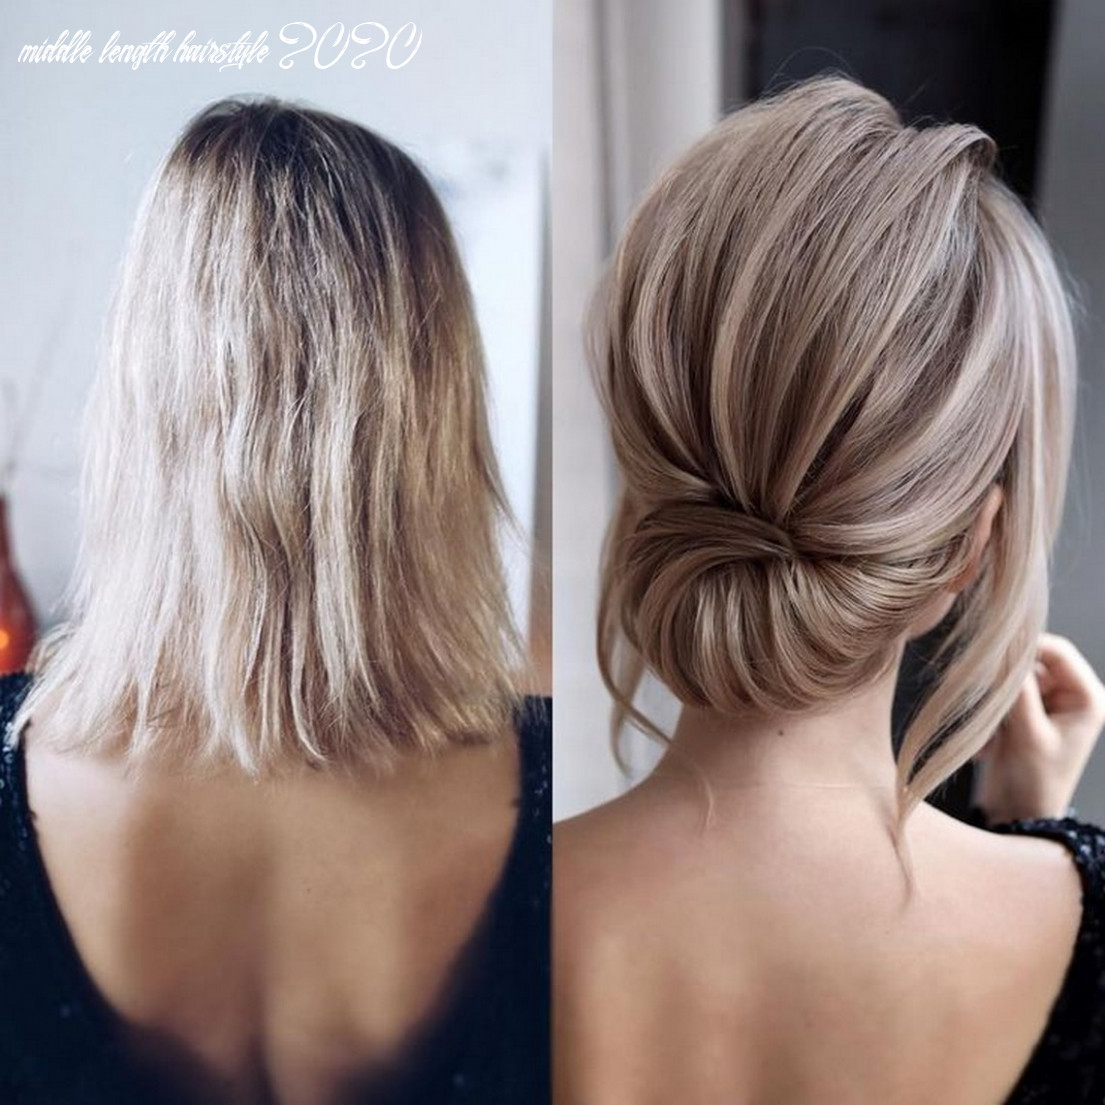 11 medium length wedding hairstyles for 11 brides inspira middle length hairstyle 2020